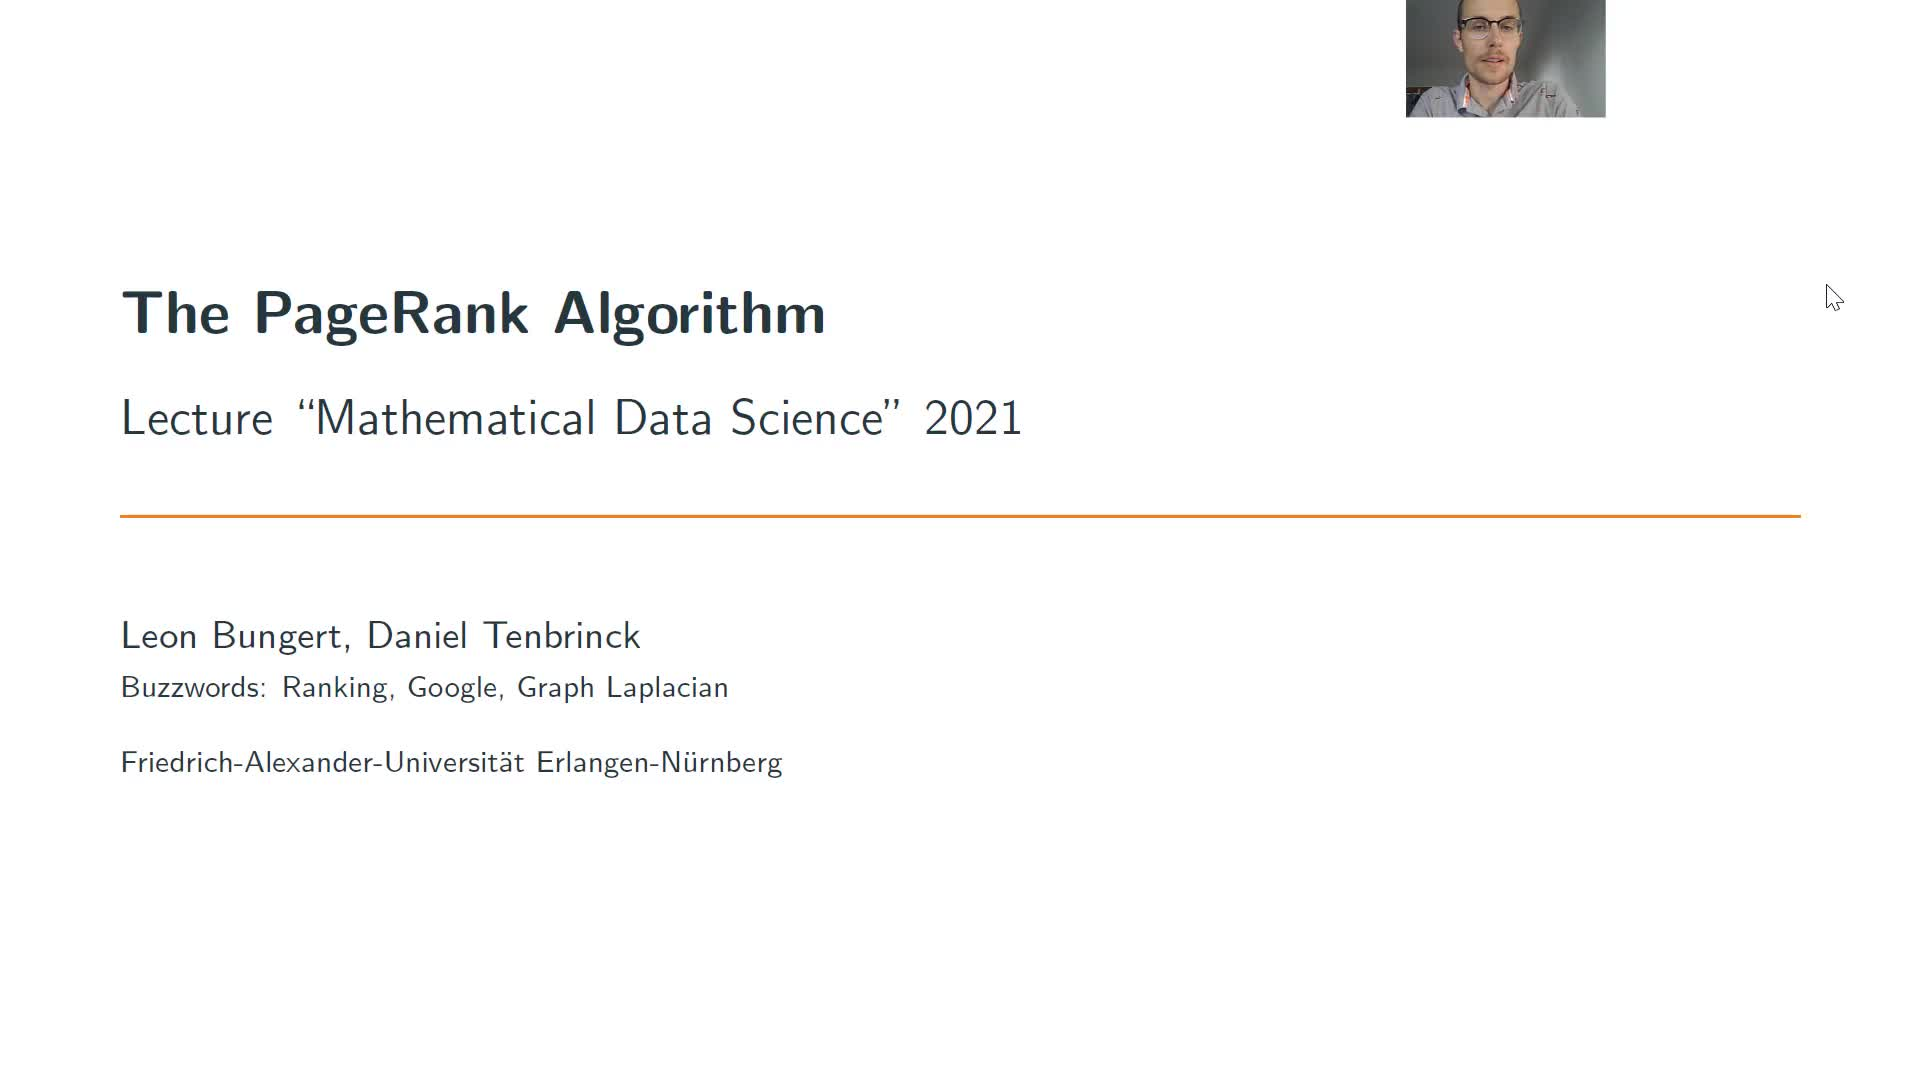 The PageRank Algorithm preview image